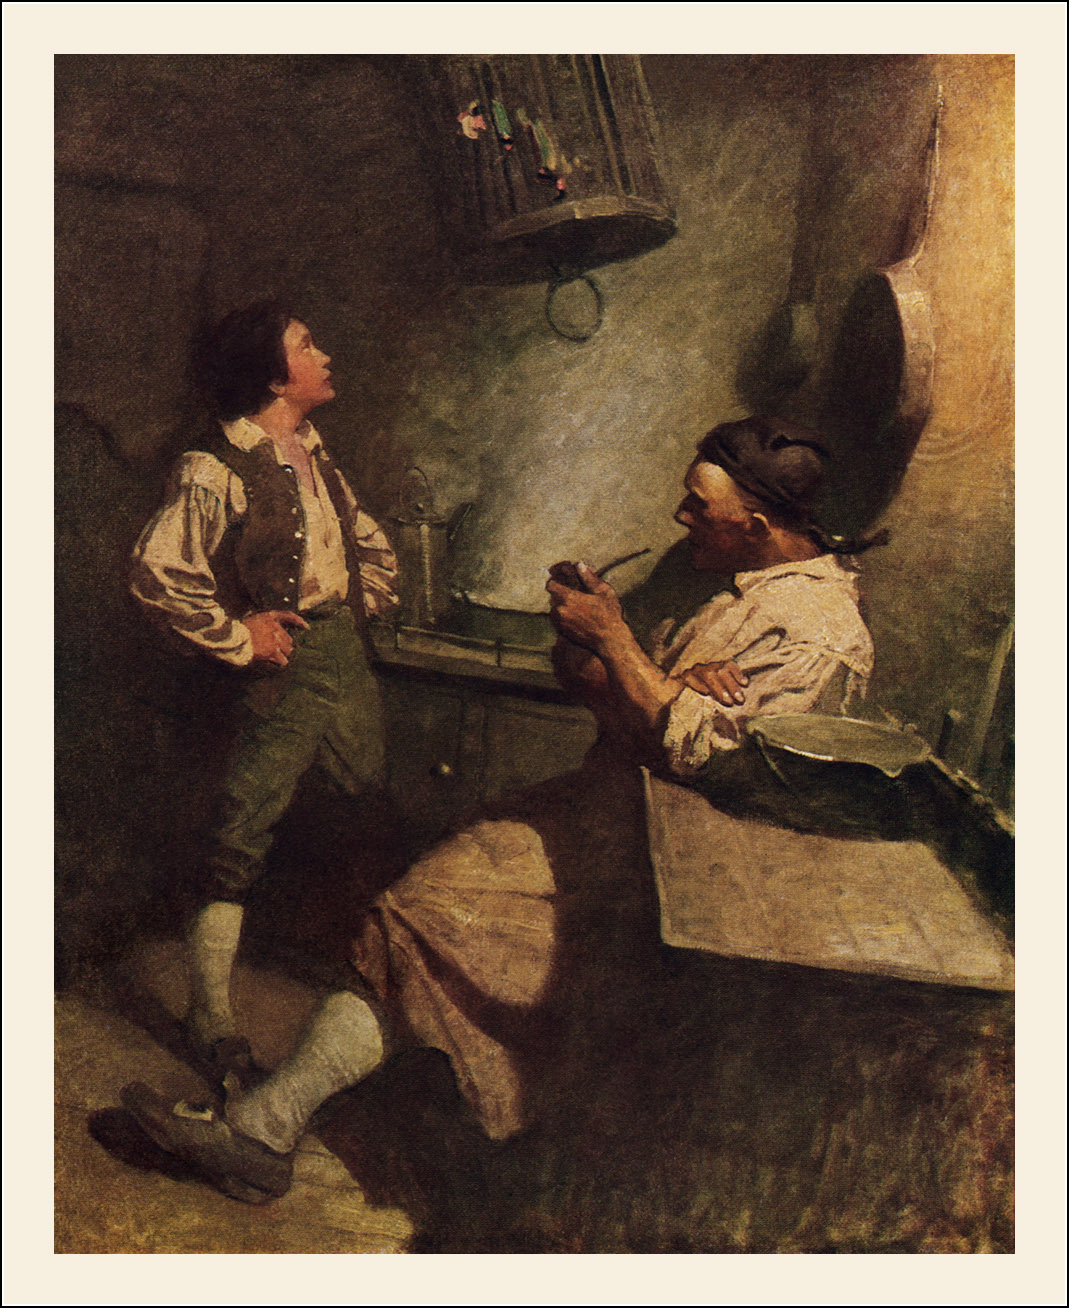 N.C. Wyeth, Treasure Island